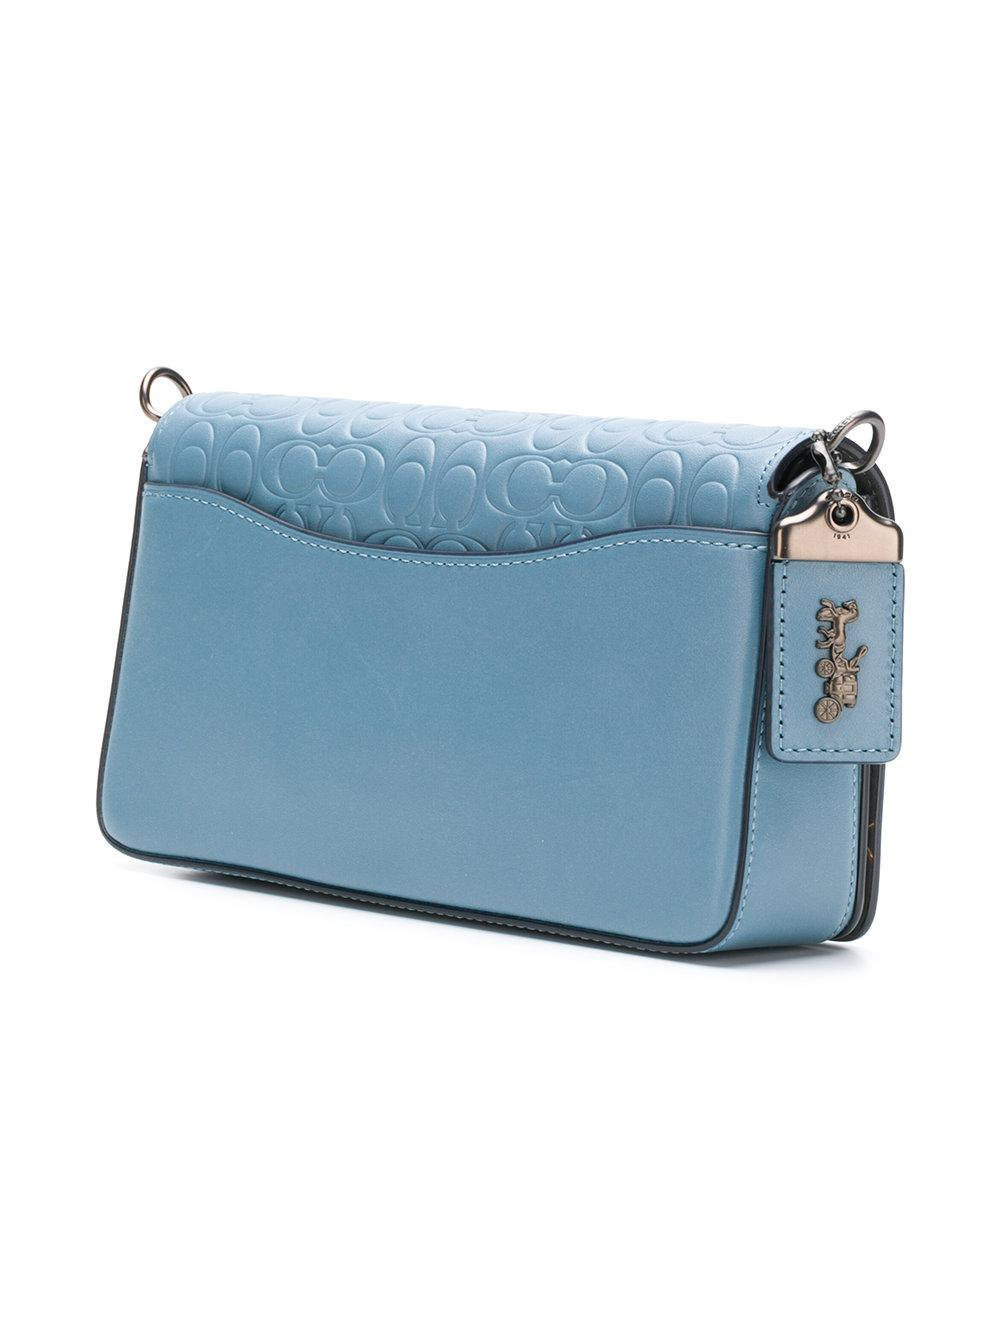 COACH Leather Square Shaped Crossbody Bag in Blue